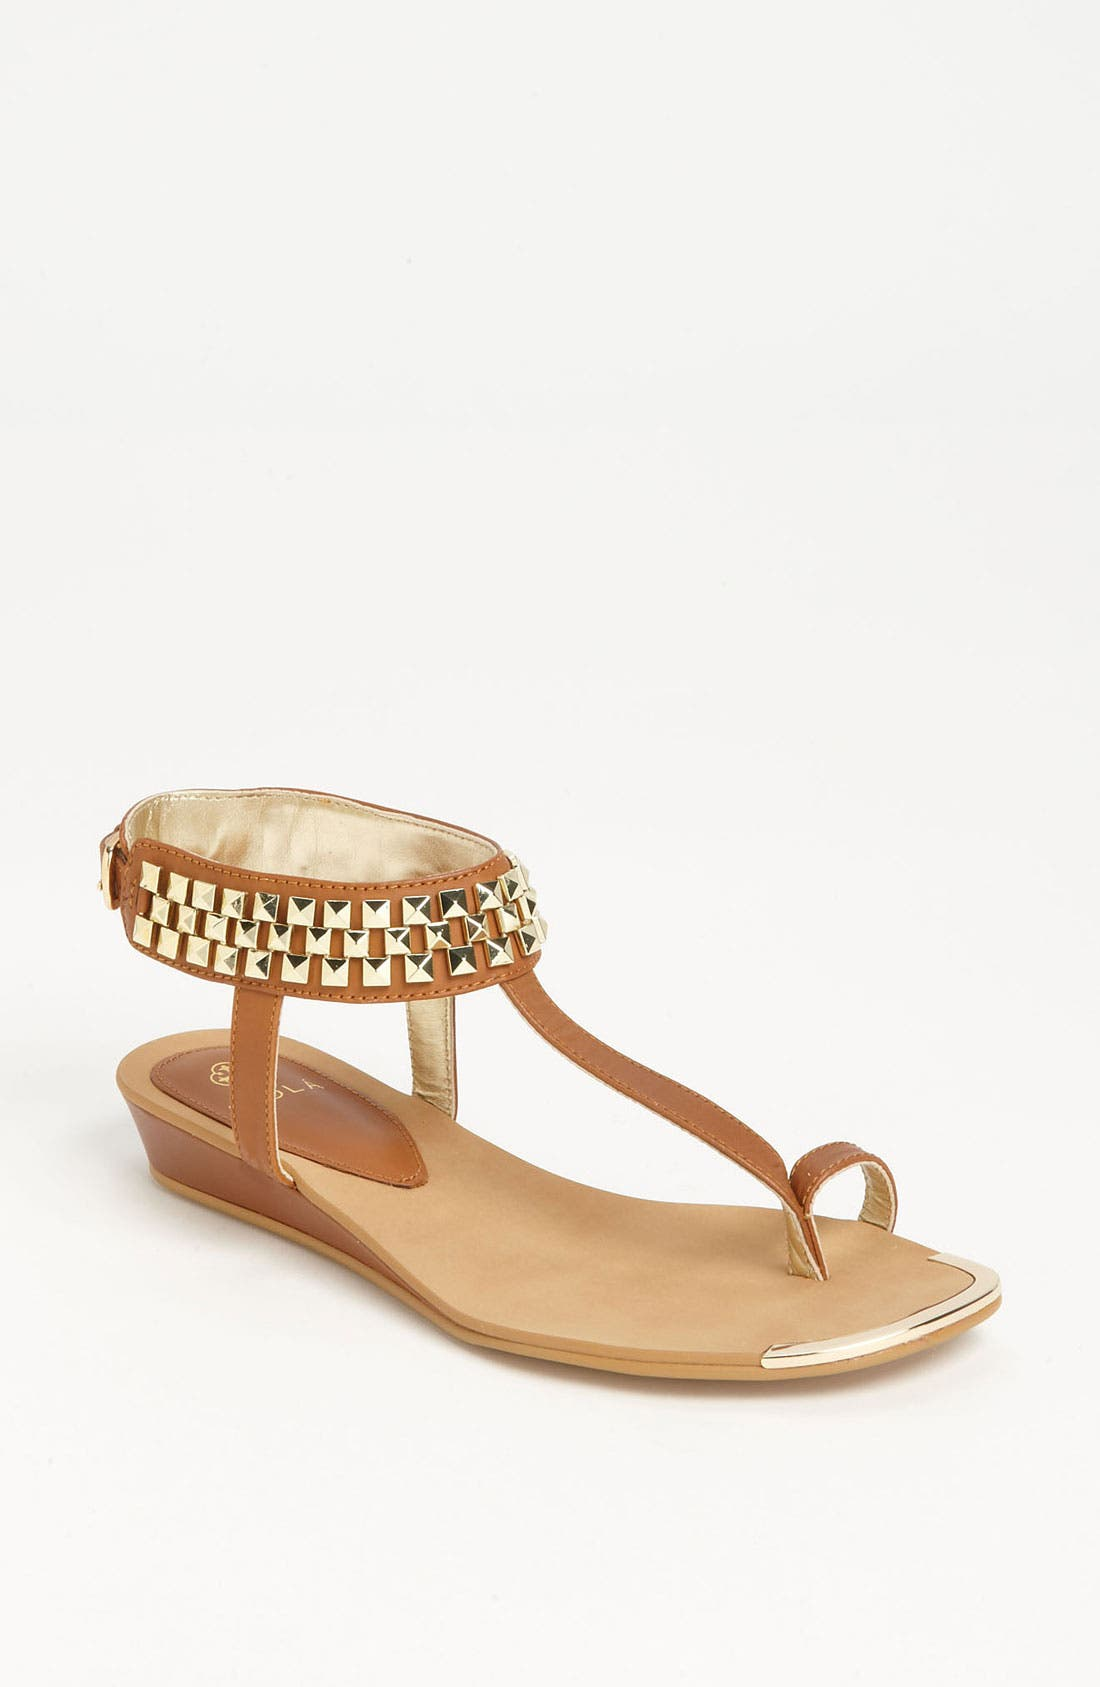 Alternate Image 1 Selected - Isolá 'Adar' Sandal